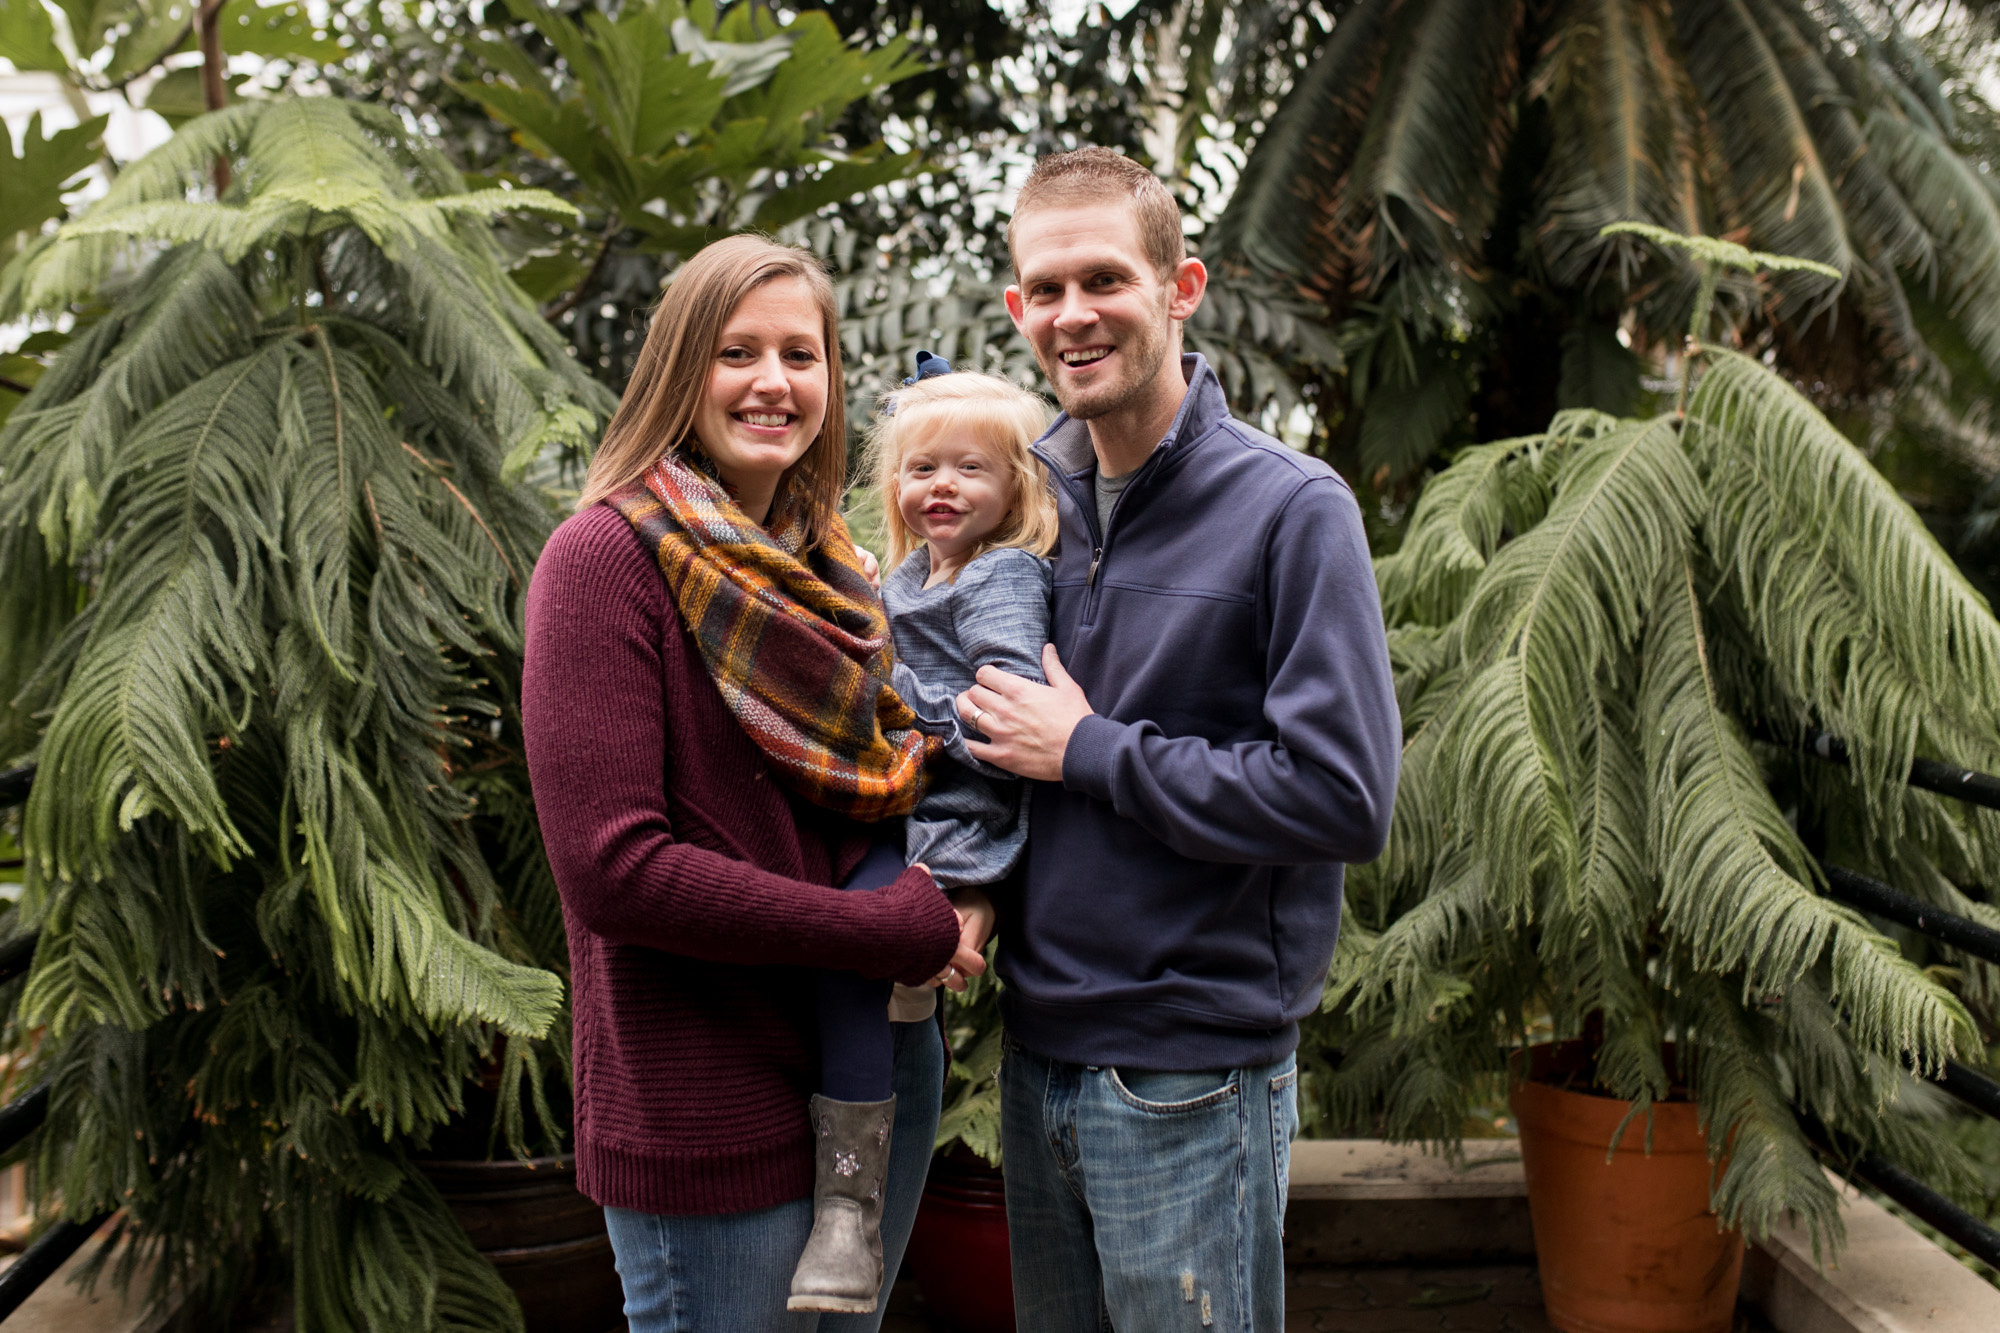 mom and dad hold baby during family session photography at Foellinger-Freimann Botanical Conservatory in Fort Wayne Indiana